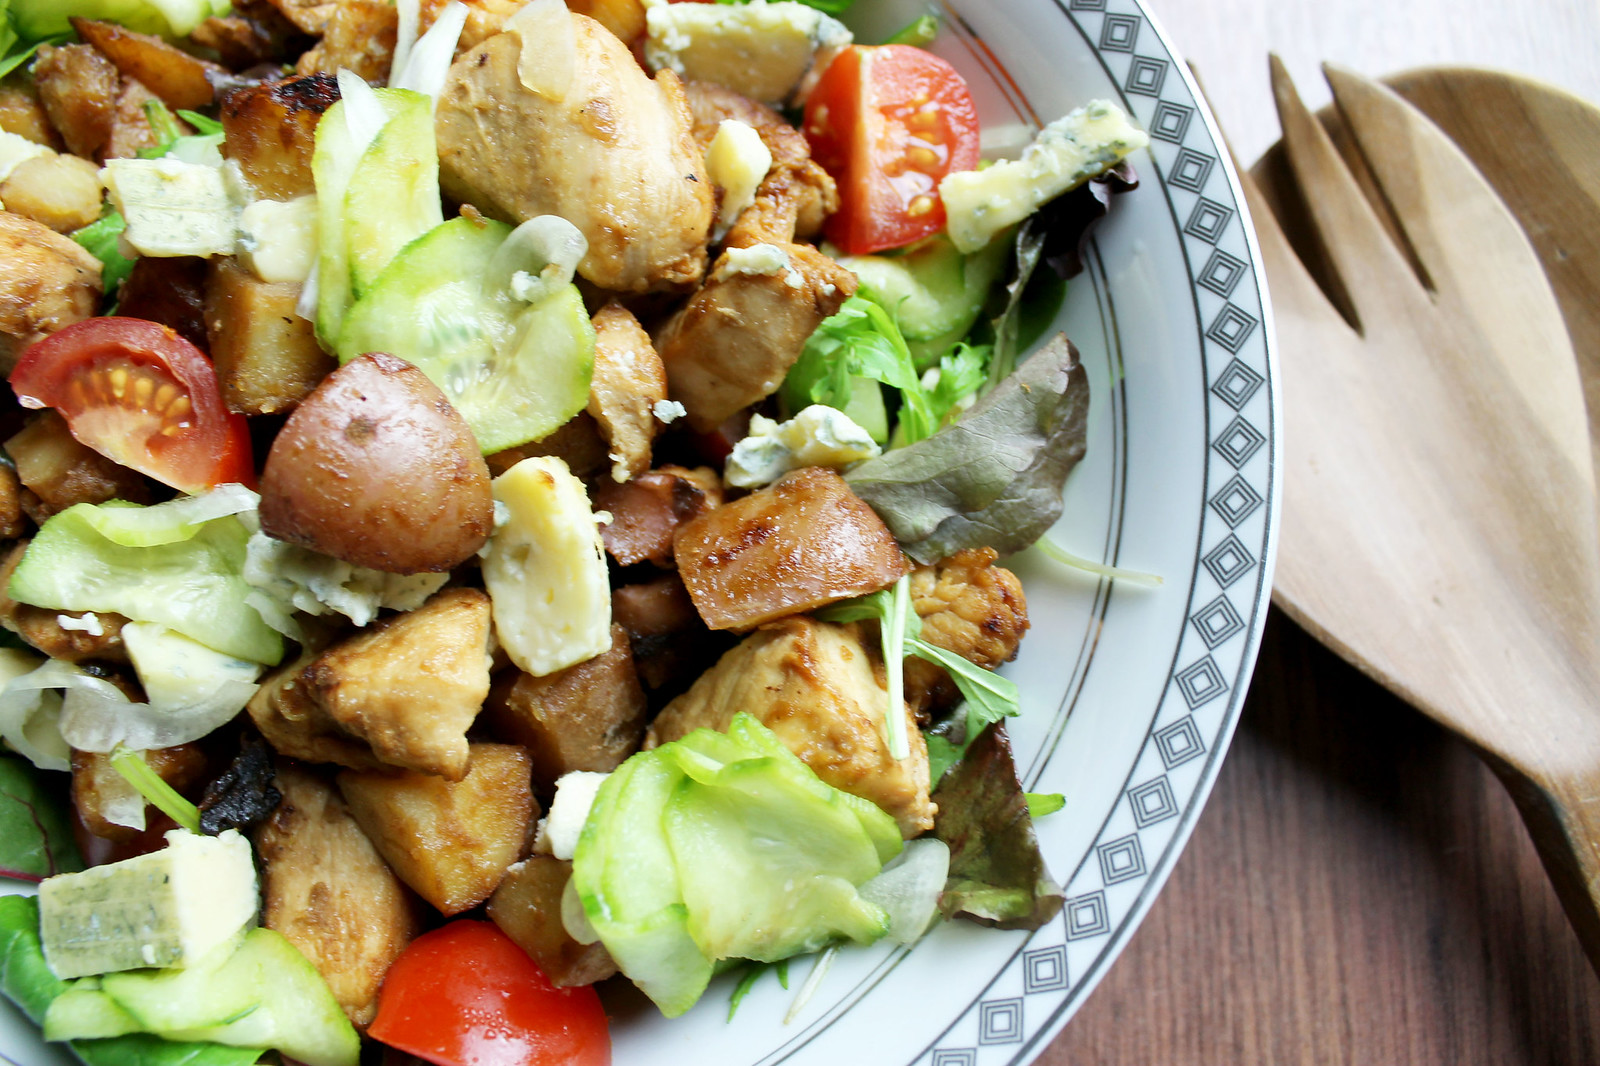 warm salad with sauteed potatoes